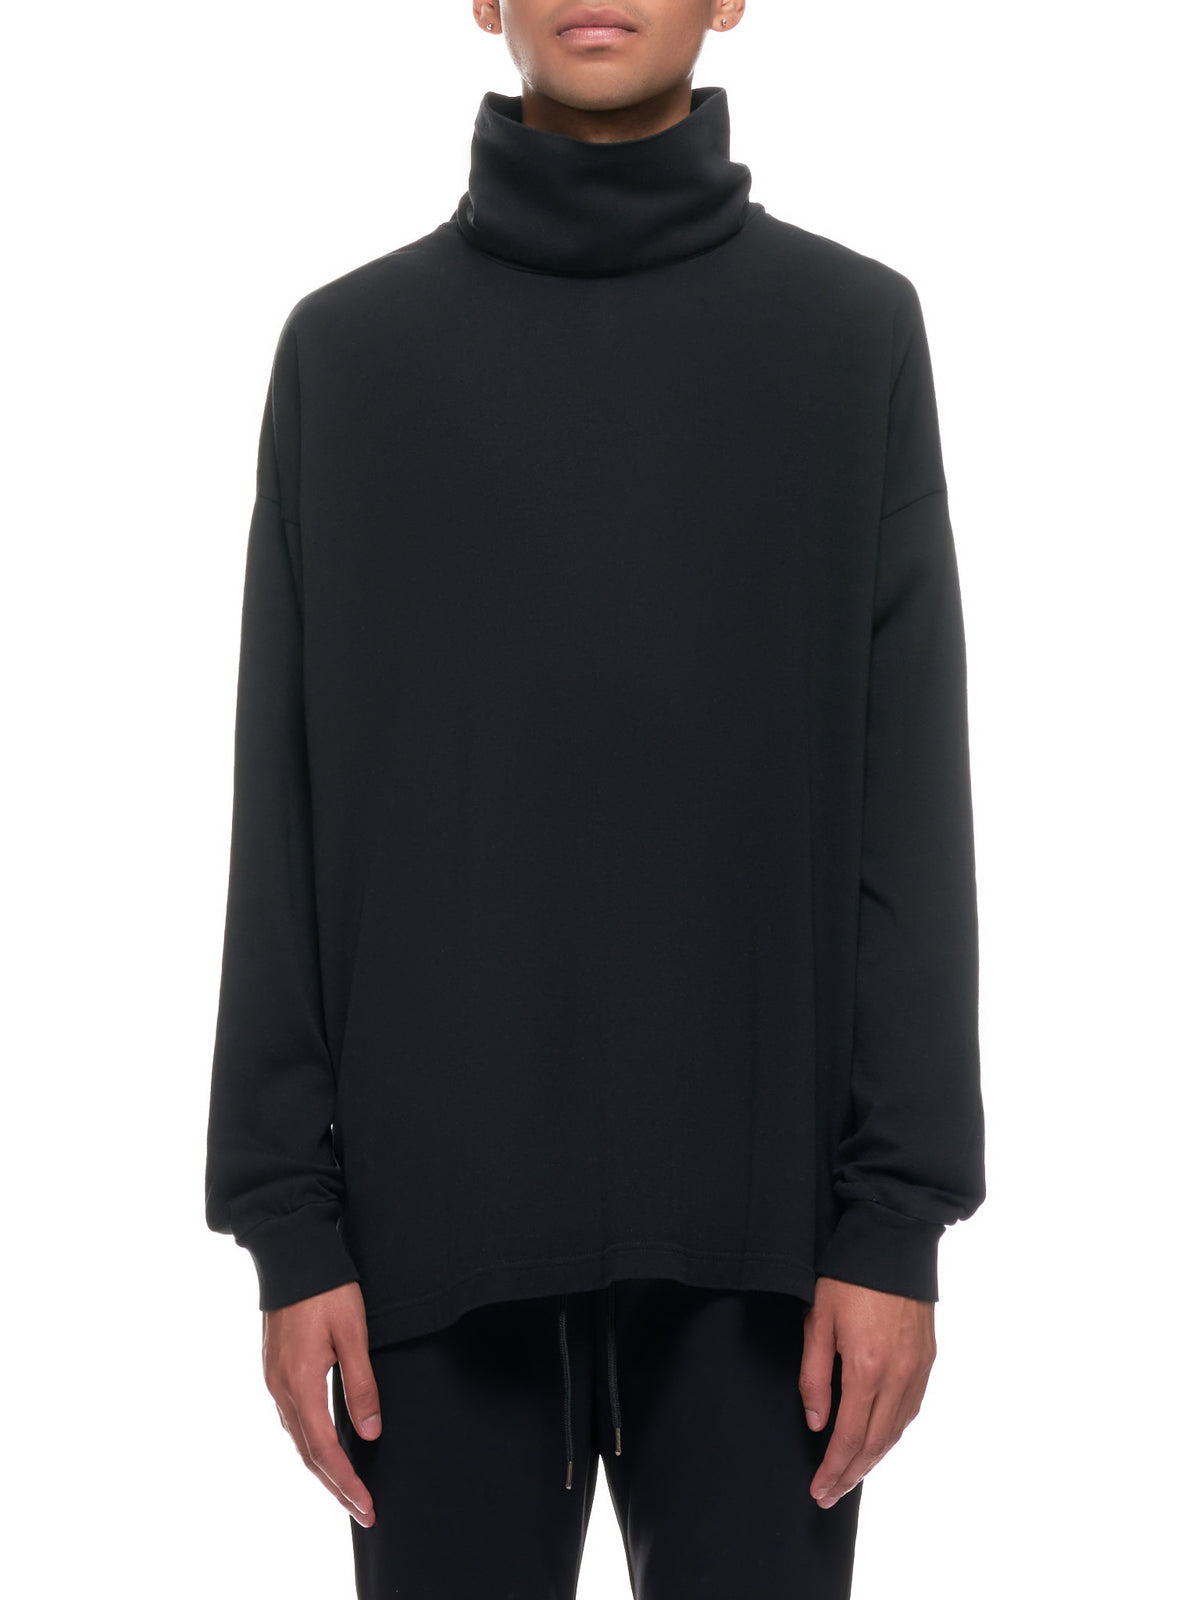 Lightweight Cowl Pullover Sweater (KJ03-003-BLACK)